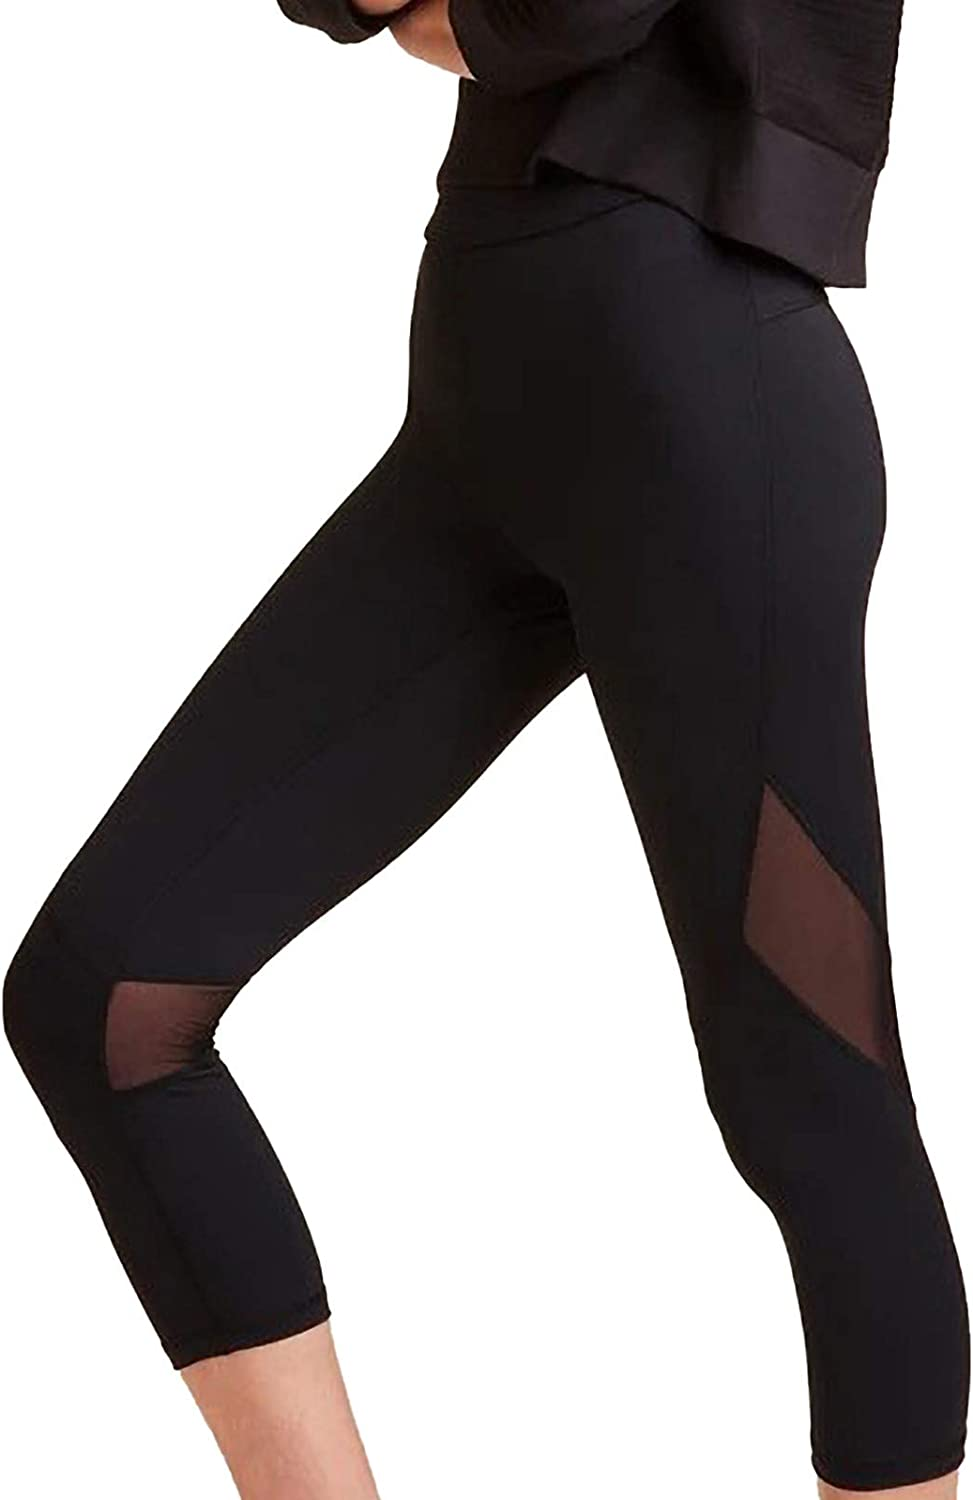 Fankle High Waisted Yoga Pants Tummy Control Workout Running 4 Way Stretch Yoga Leggings Women Mesh Capris Pants